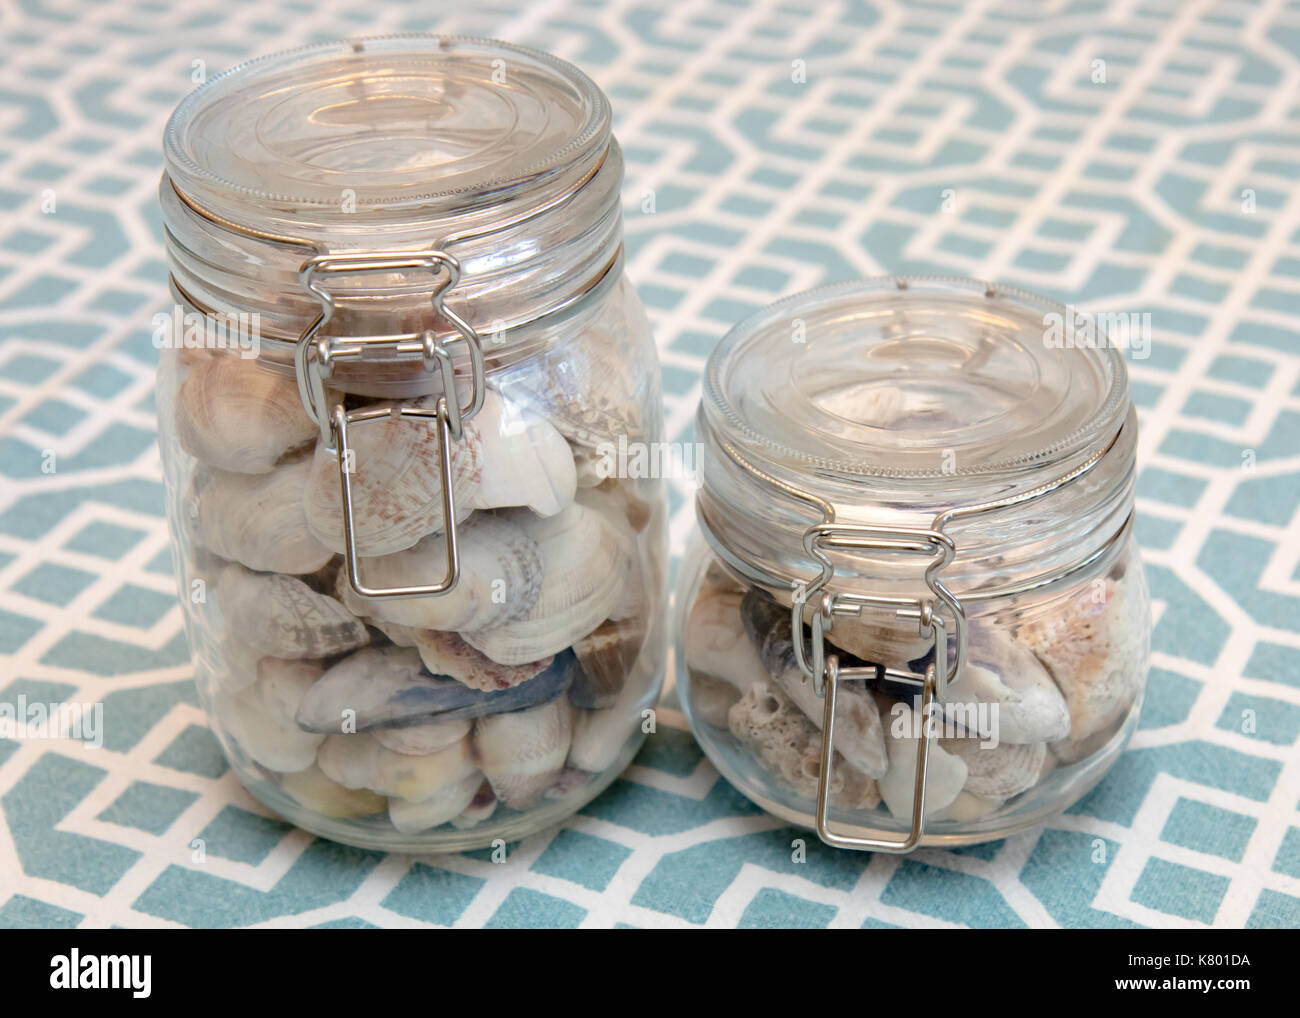 Two jars full of seashells sitting on a pretty blue tablecloth. - Stock Image